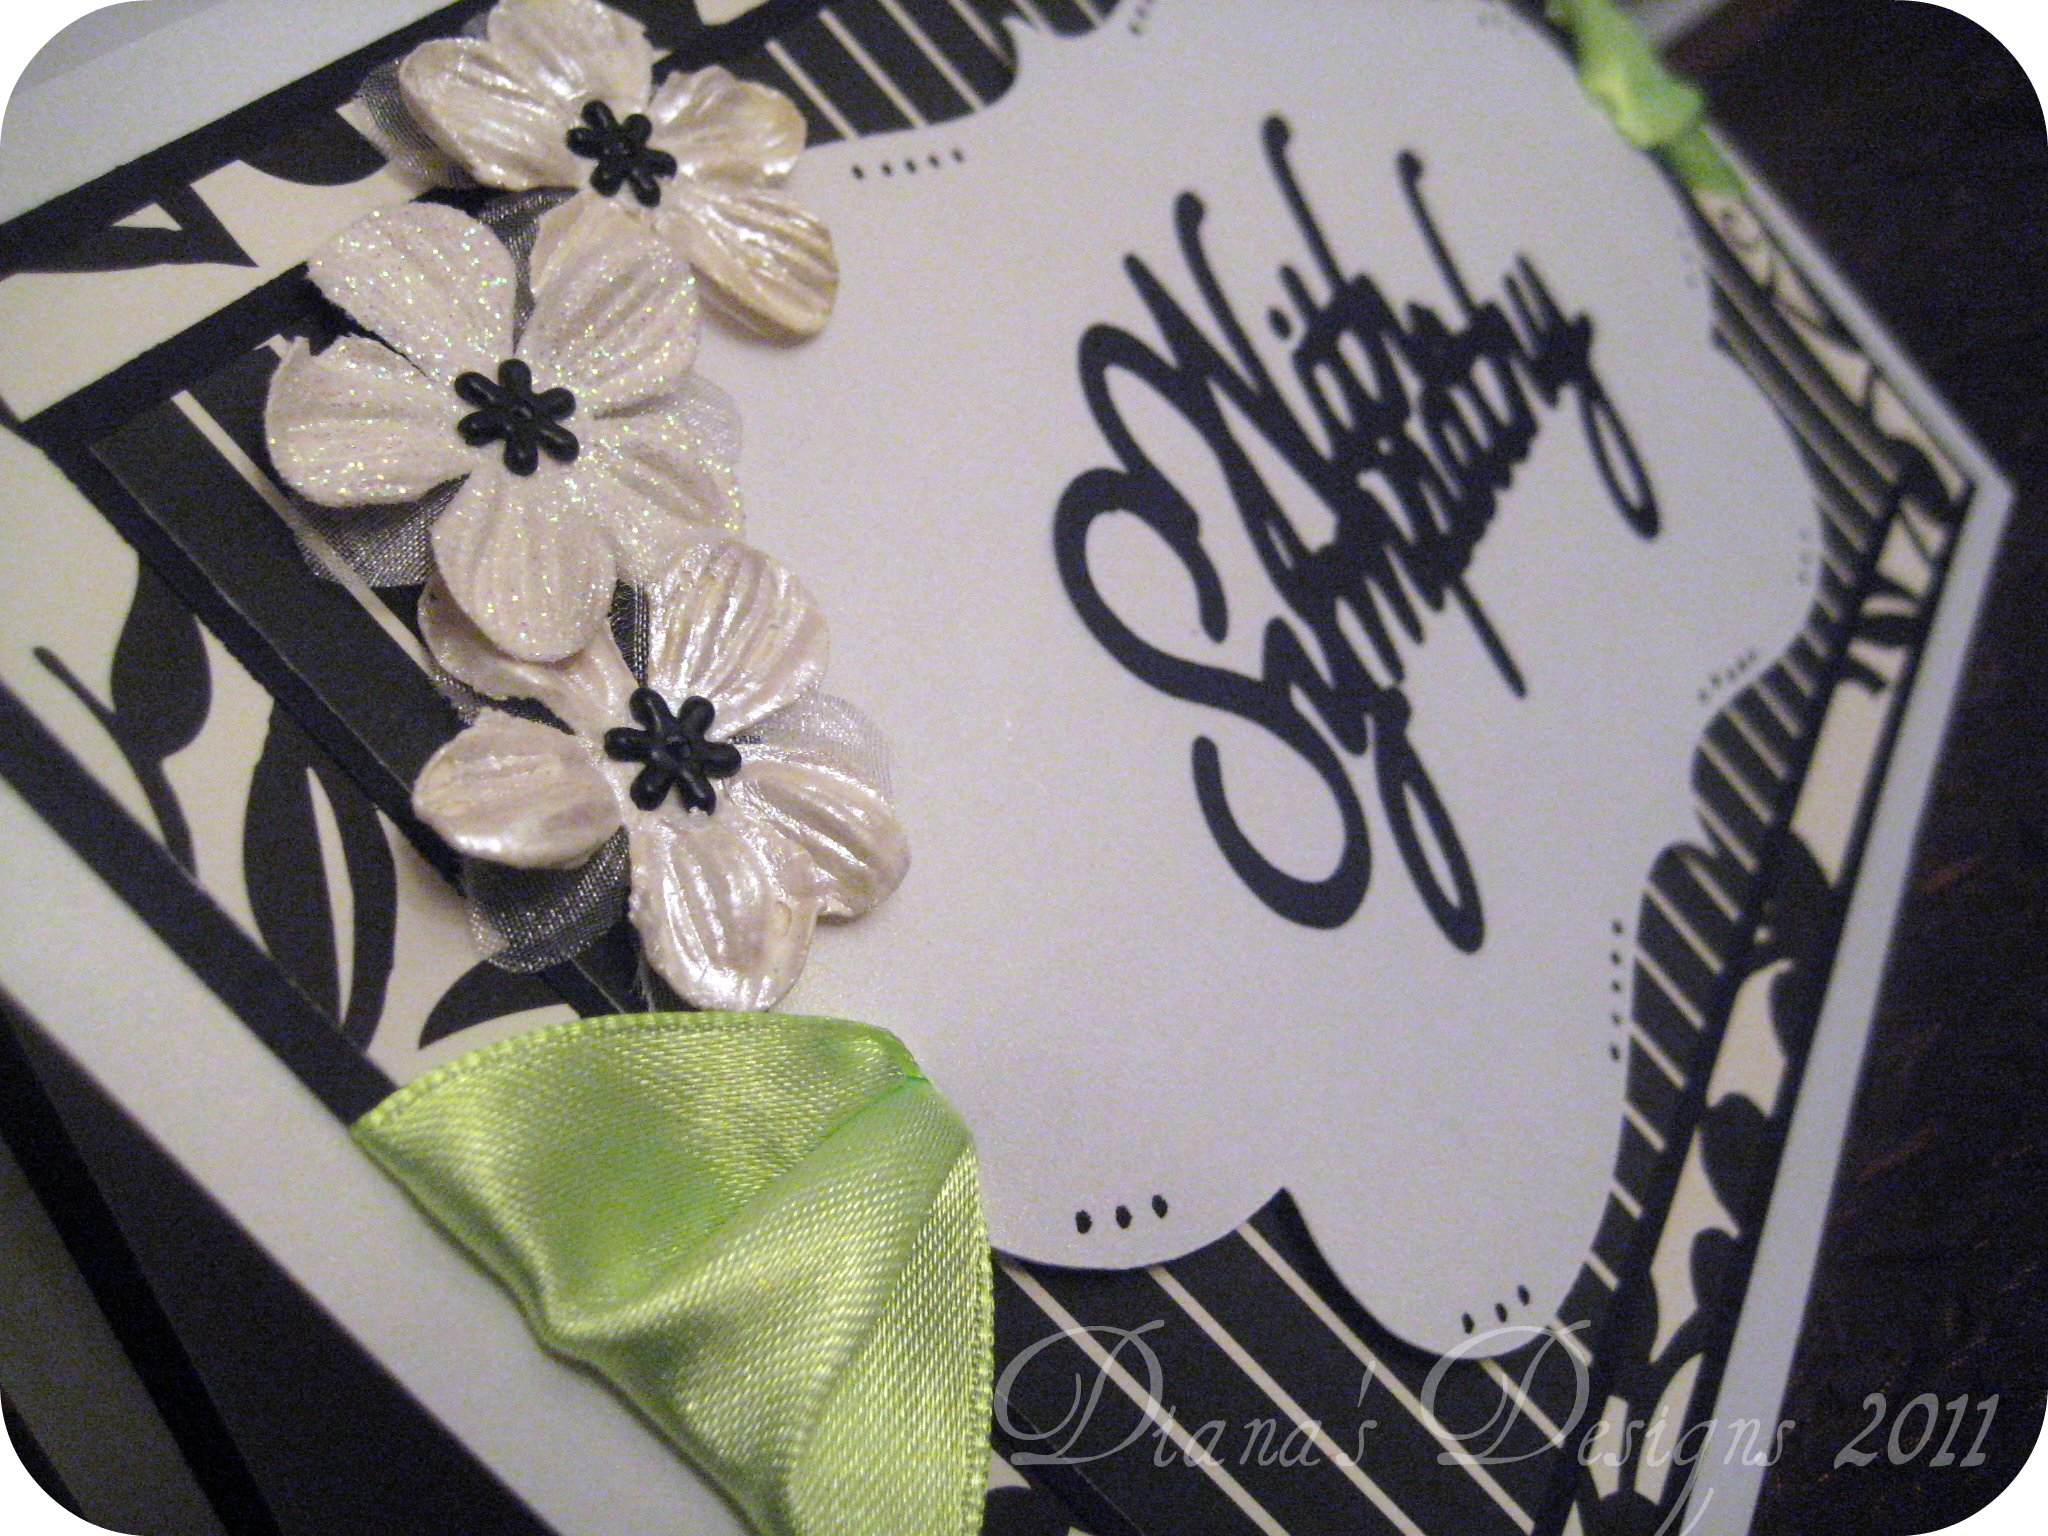 Sympathy Card in Black, White and Green